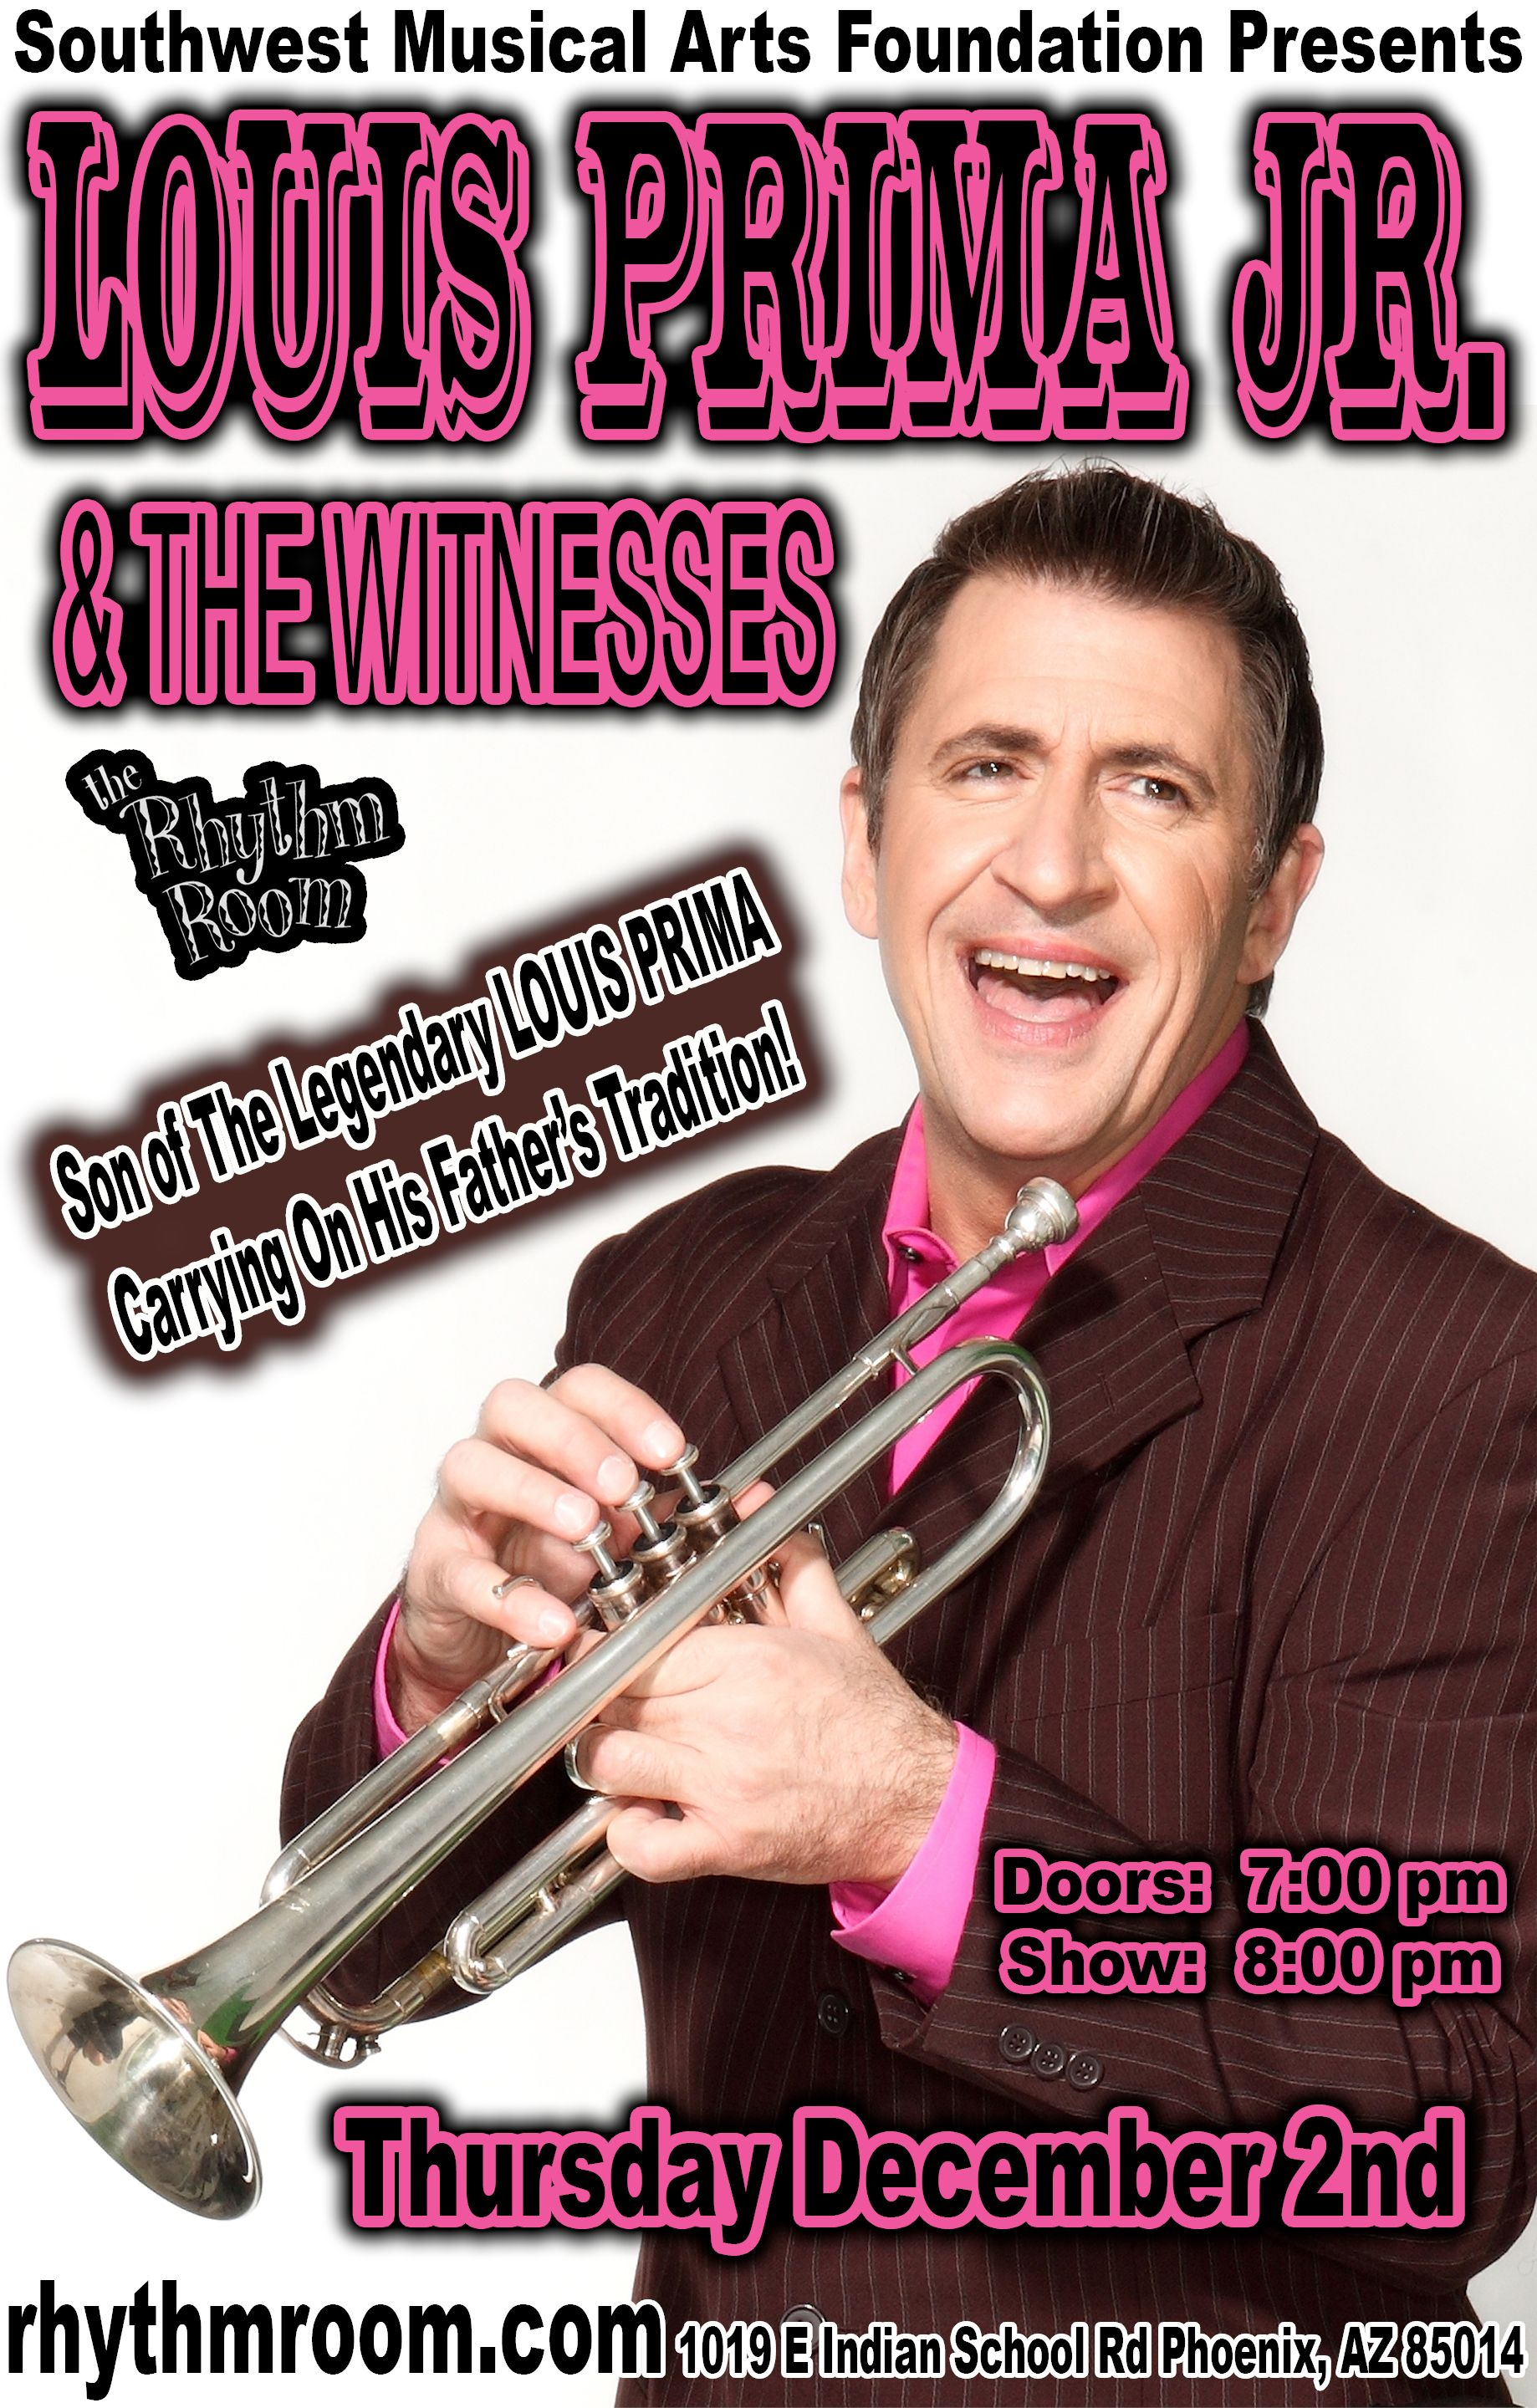 Louis Prima Jr and the Witnesses: